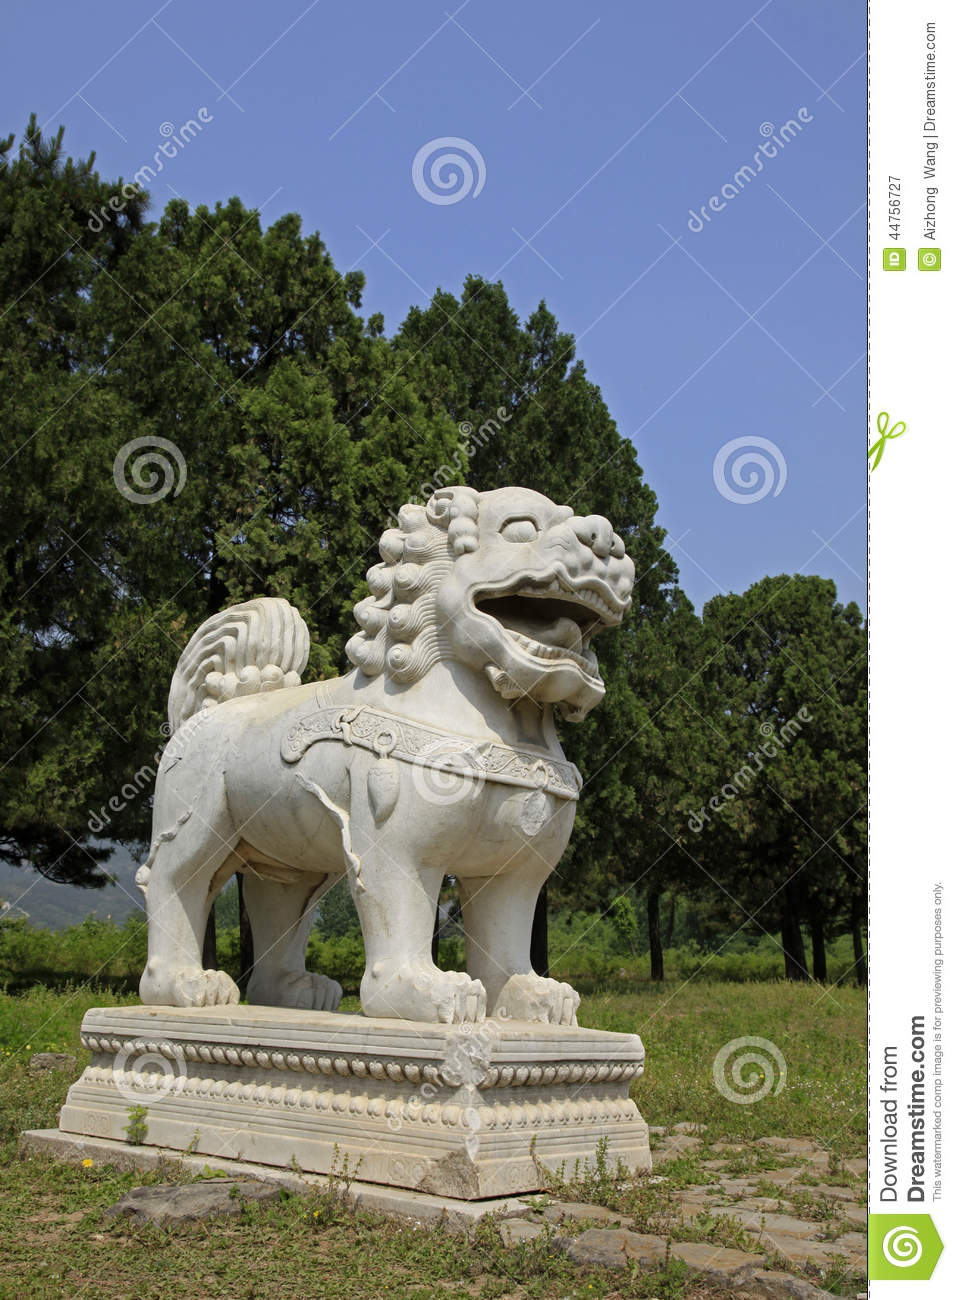 Clear dongling, stone statues